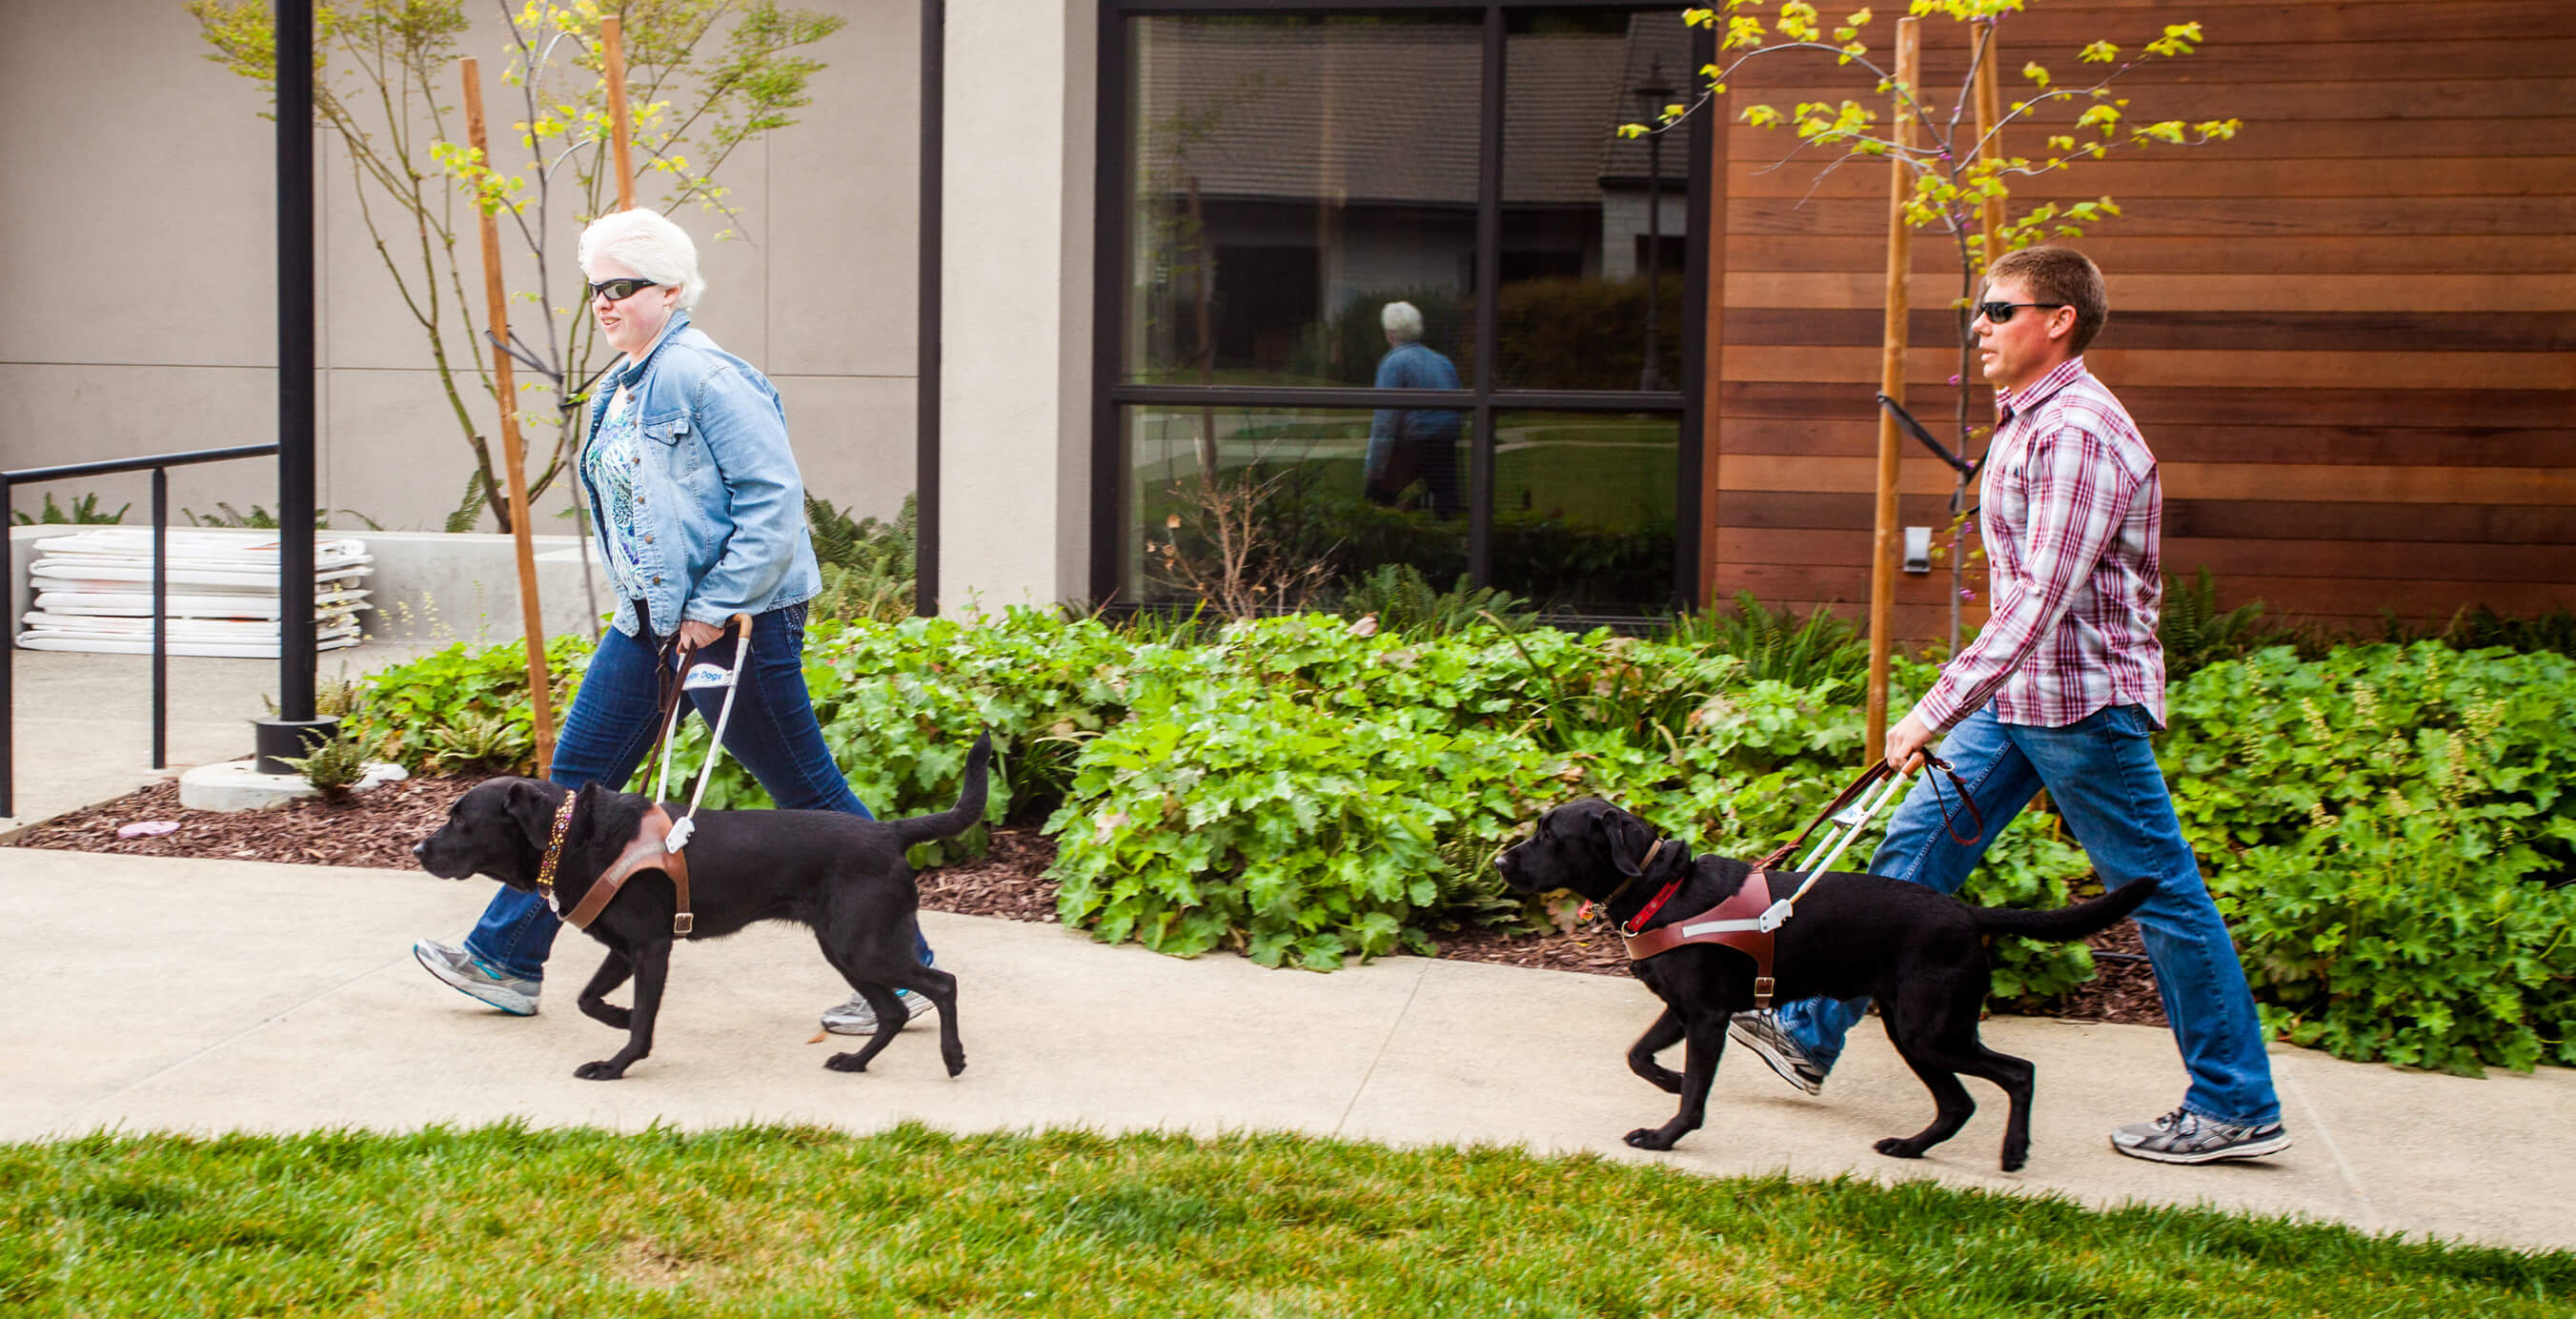 Two guide dog users (one male and one female) walk at a brisk pace along a path on the San Rafael, CA campus